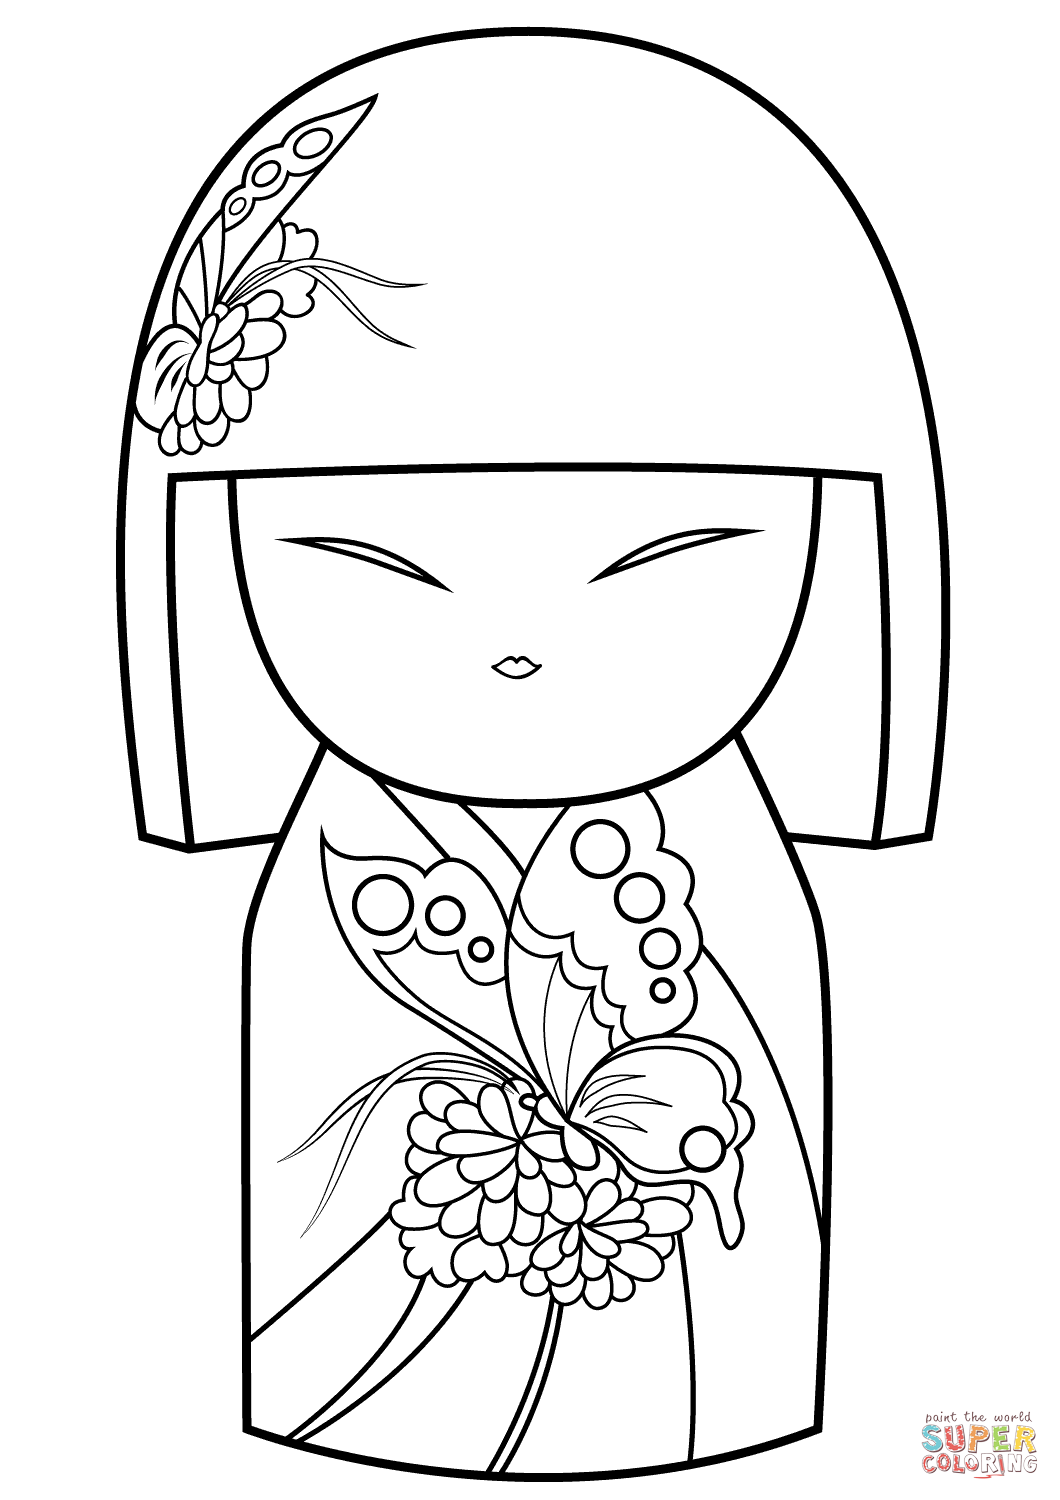 Coloring pages, Coloring books, Japanese dolls